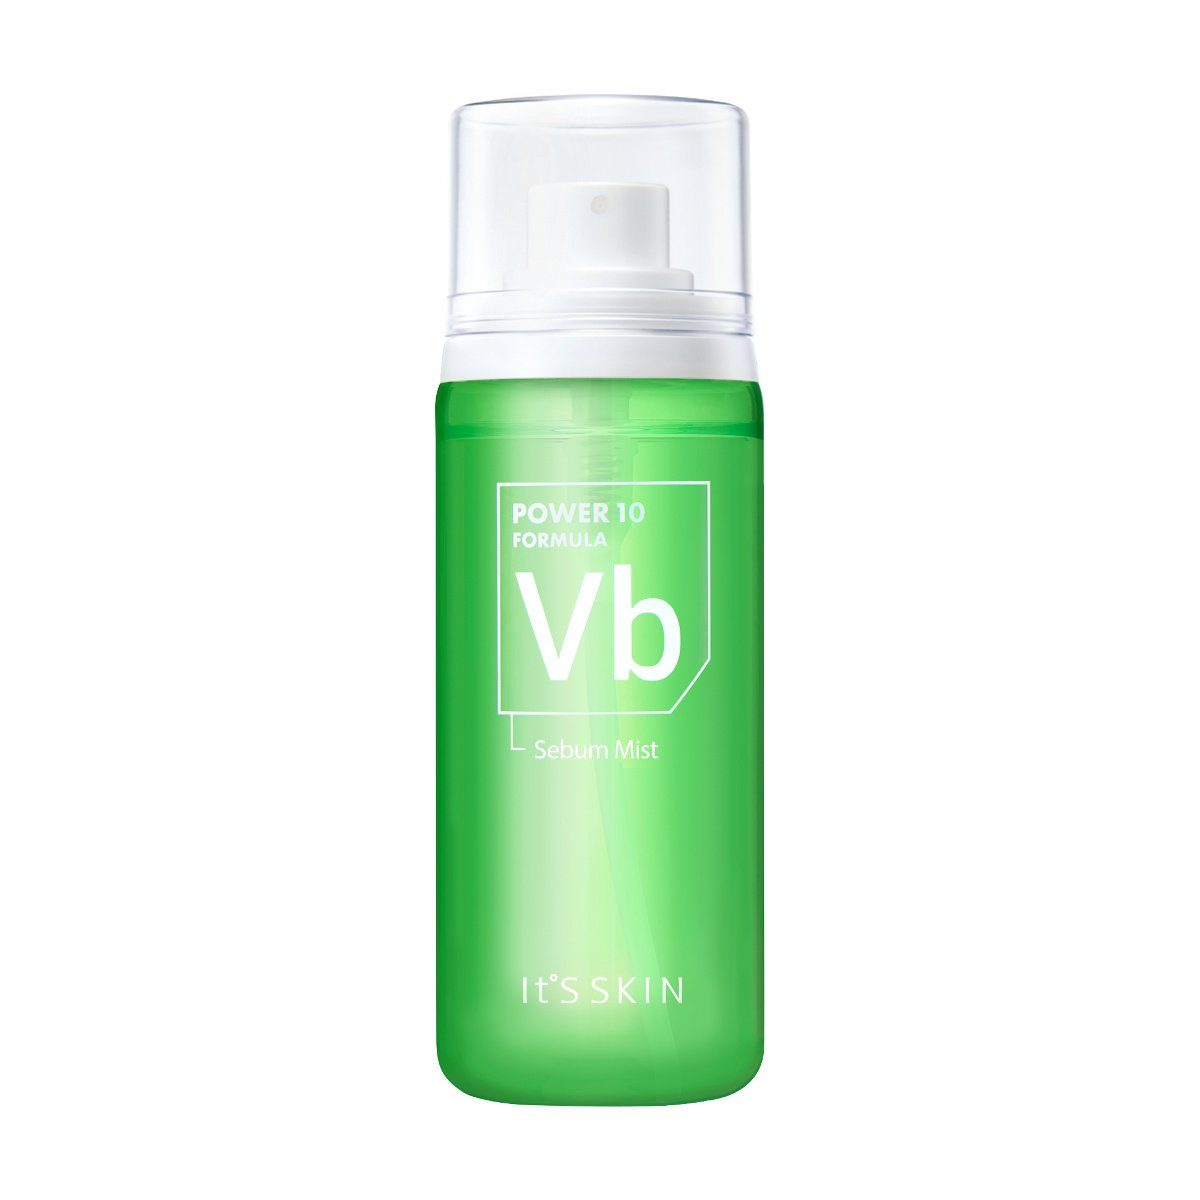 Health & Beauty > Personal Care > Cosmetics > Skin Care > Lotion & Moisturizer - Power 10 Formula VB Sebum Mist Mgiełka Do Twarzy 80 Ml